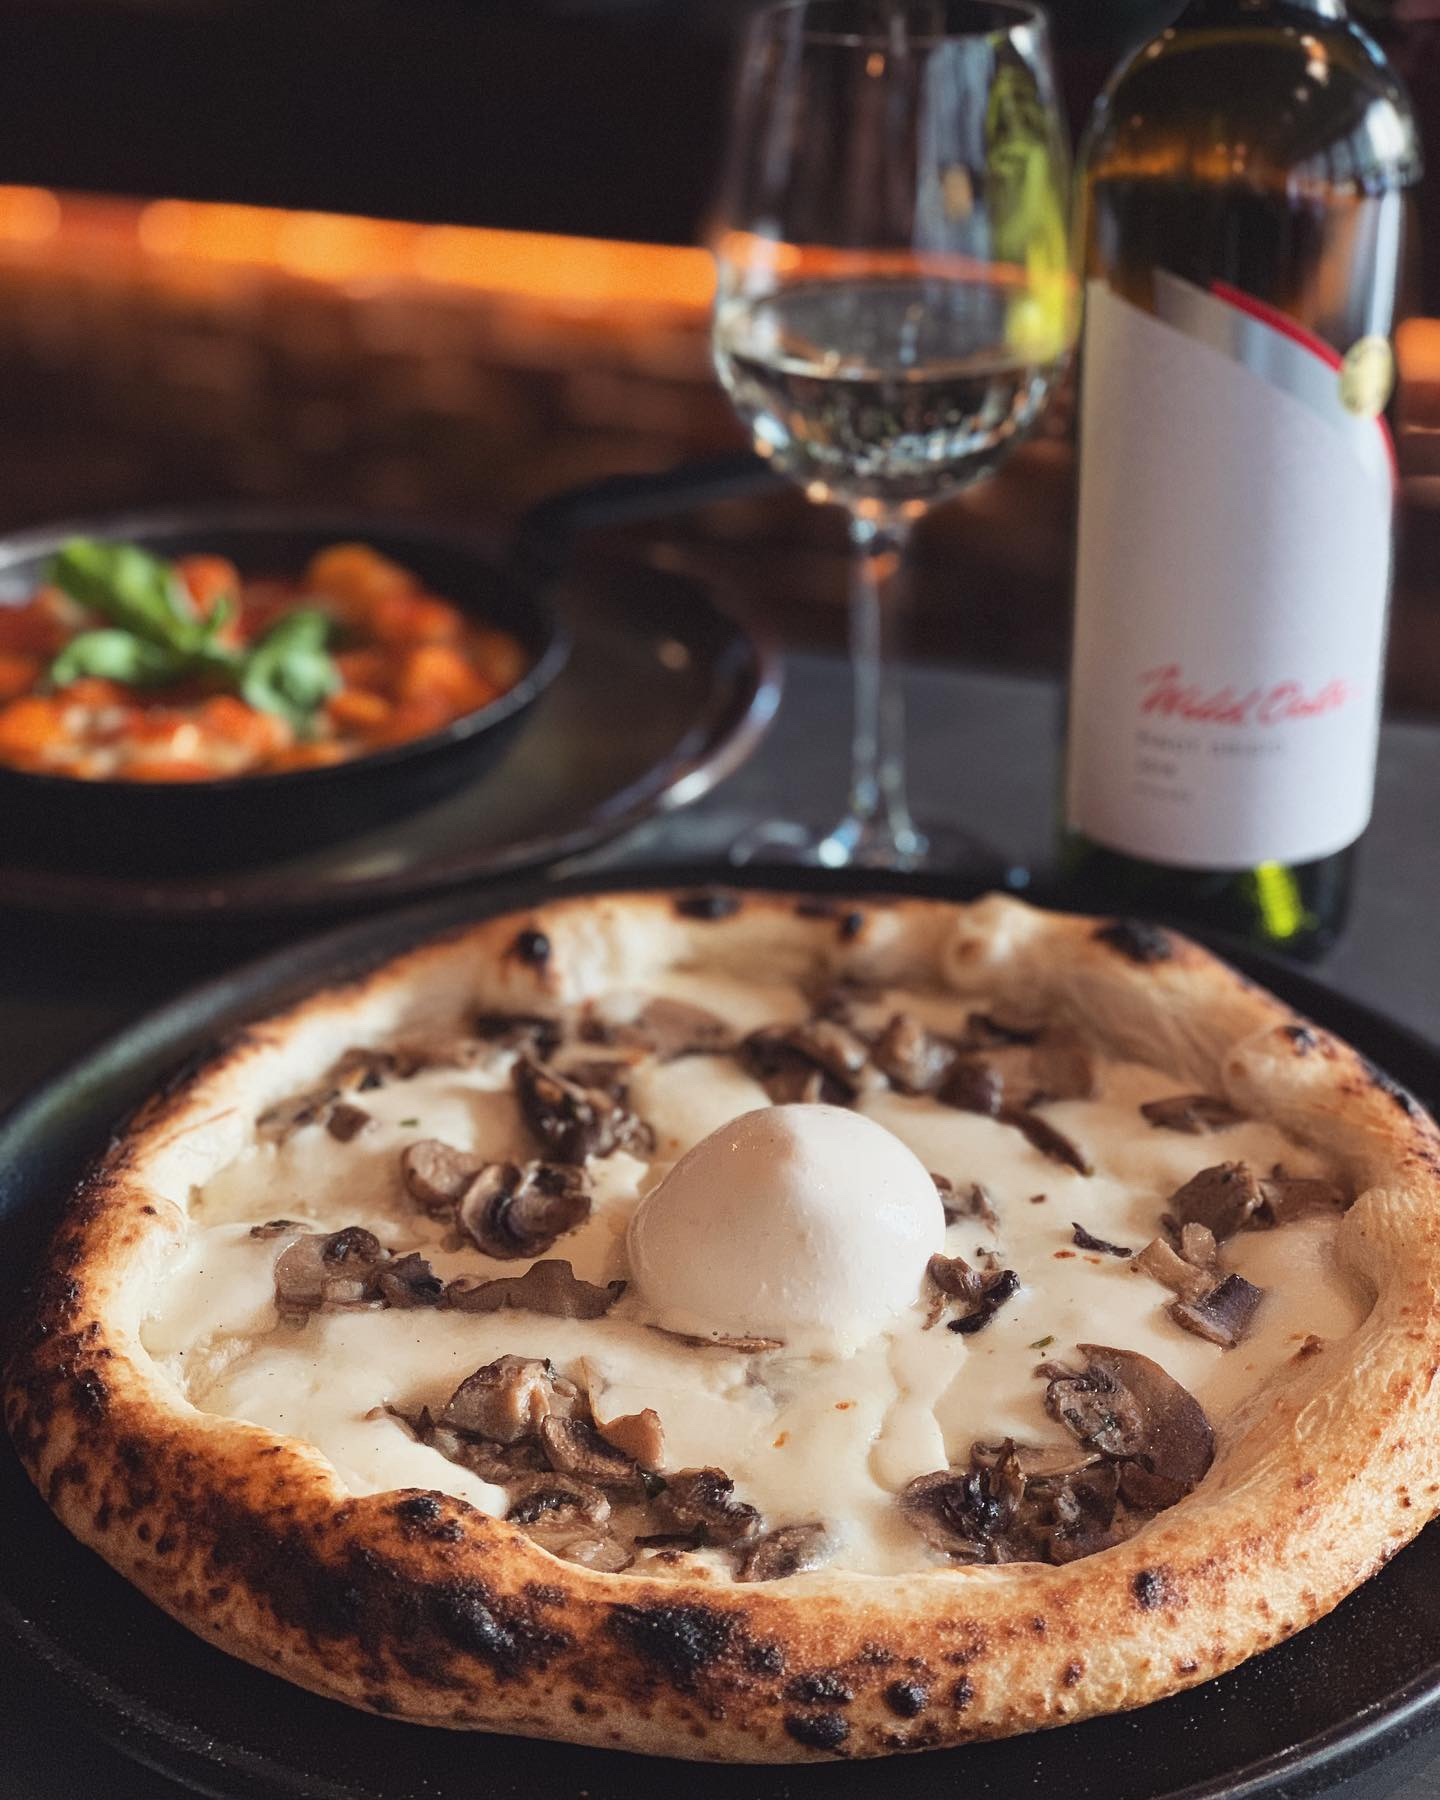 10-16 July - ~ PIZZA FUNGHI BIANCHI ~.This week's special features a white mushroom pizza with a soft heart of truffle-infused creamy burrata. The delicate flavour of burrata cheese embraces the truffle and gives it a whole new dimension. Perfect for all our cheese lovers out there!